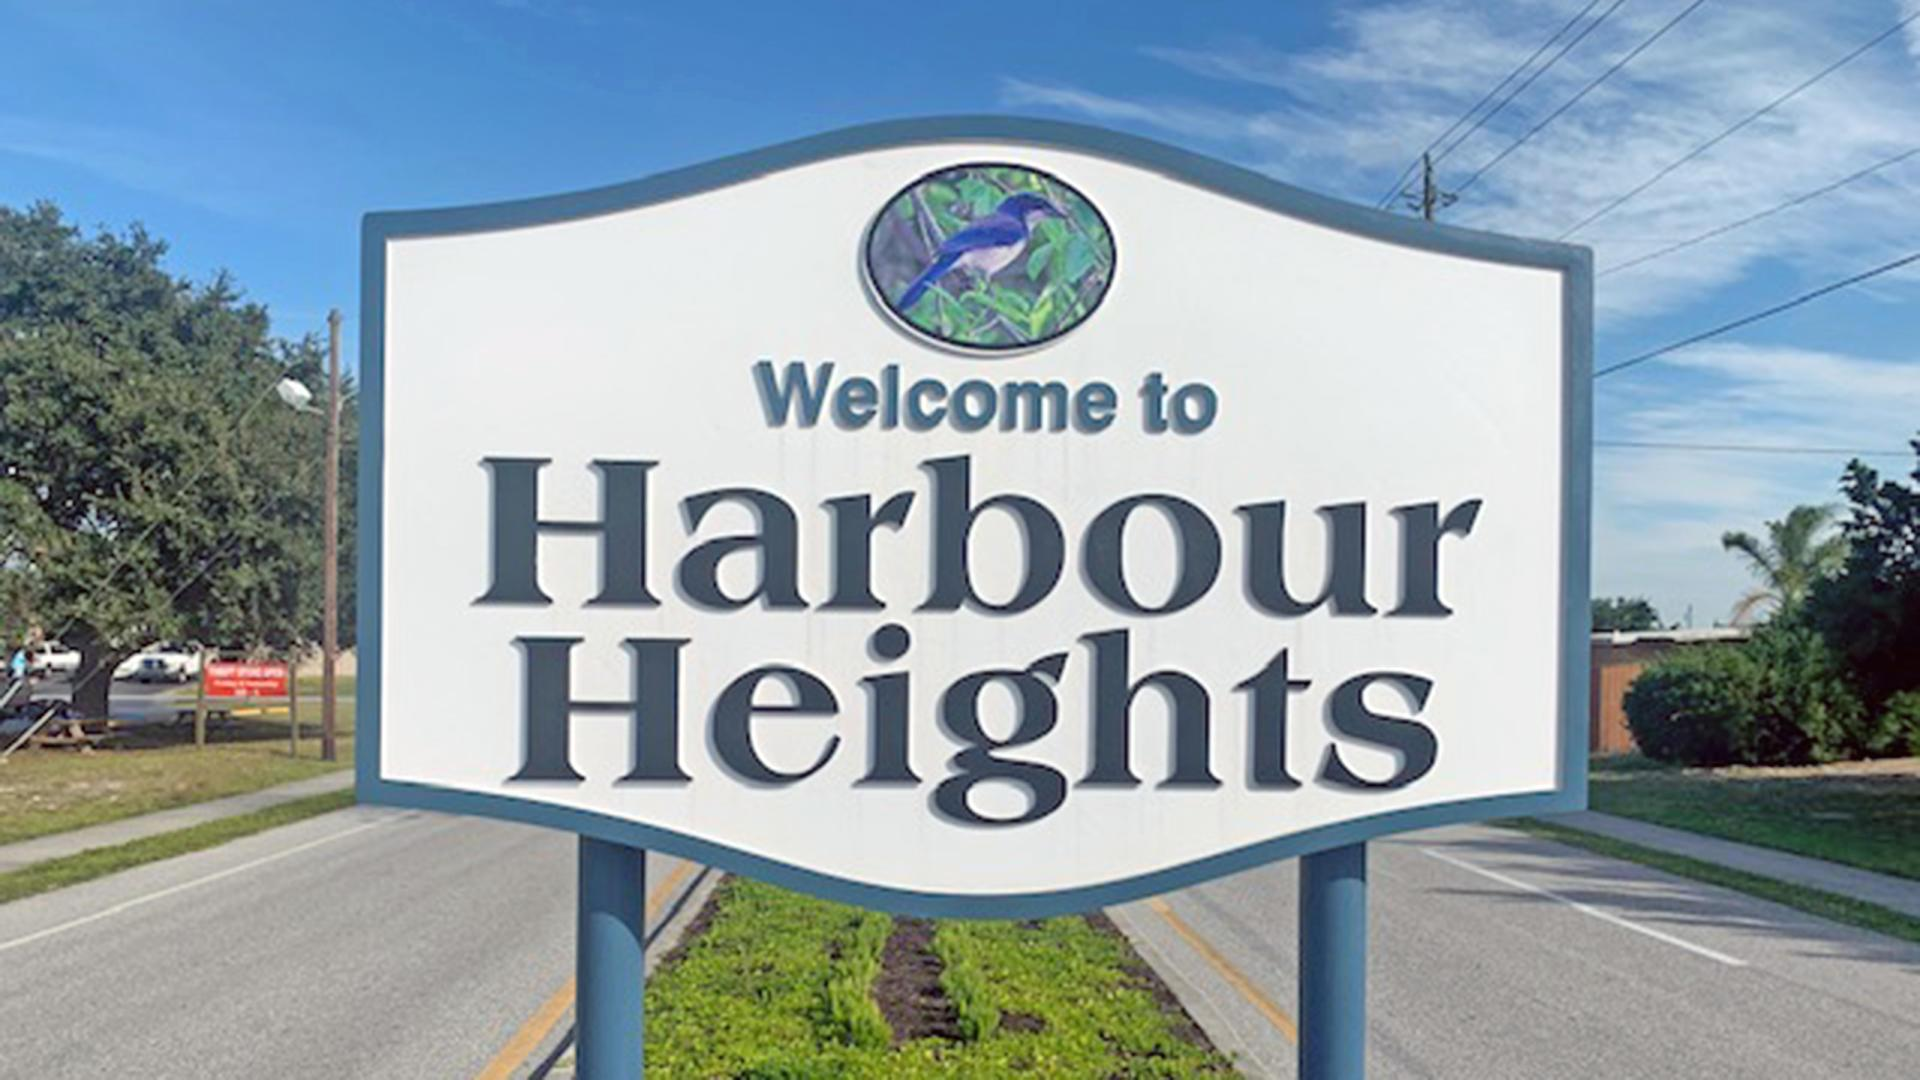 Harbour Heights,33983